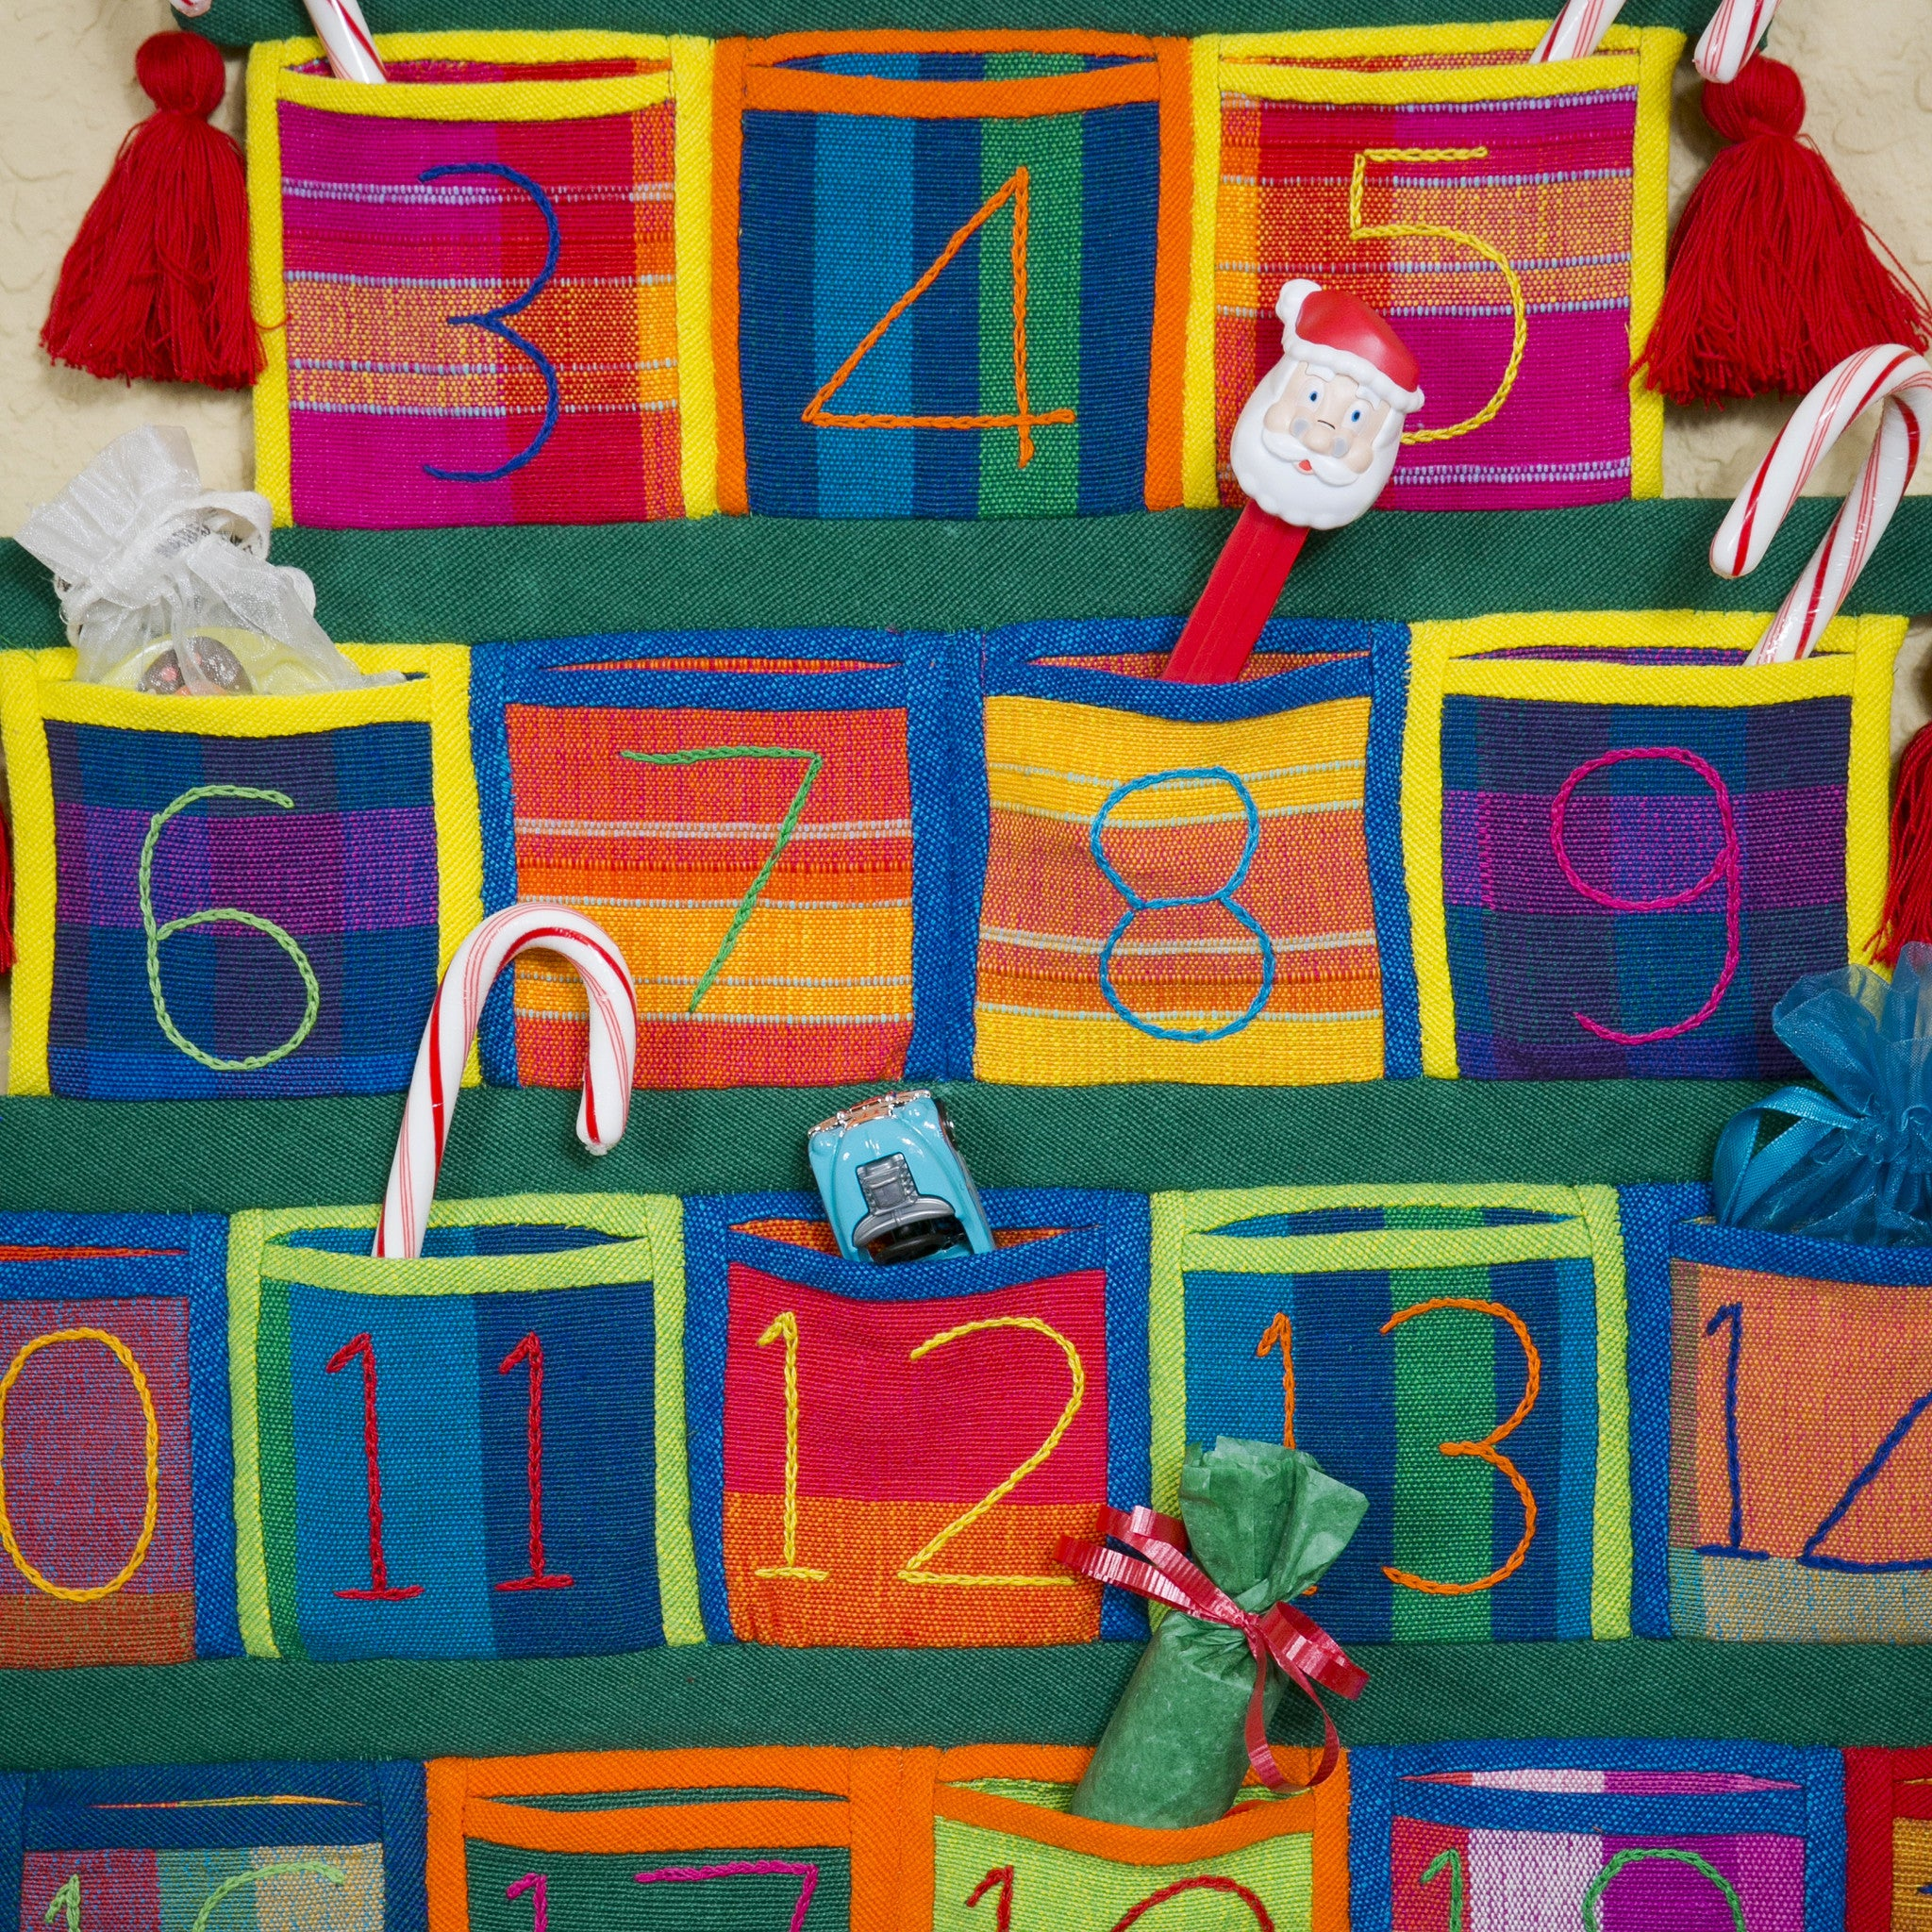 Advent Calendar – fill the pockets with fun surprises!